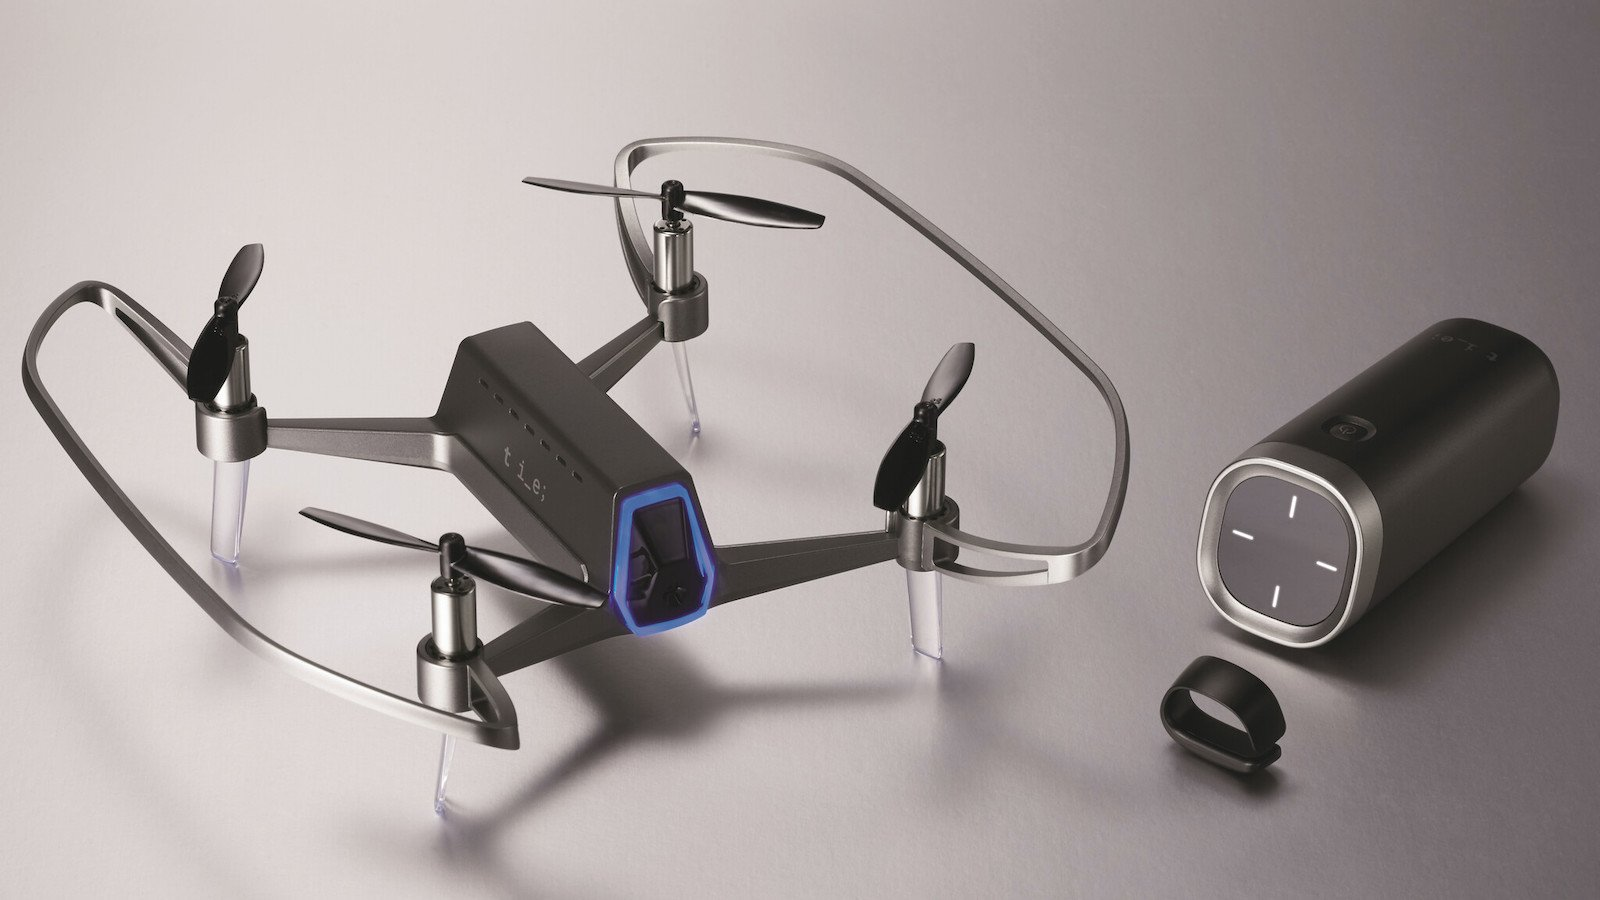 SHIFT RED Compact Drone lets you control it with just your thumb